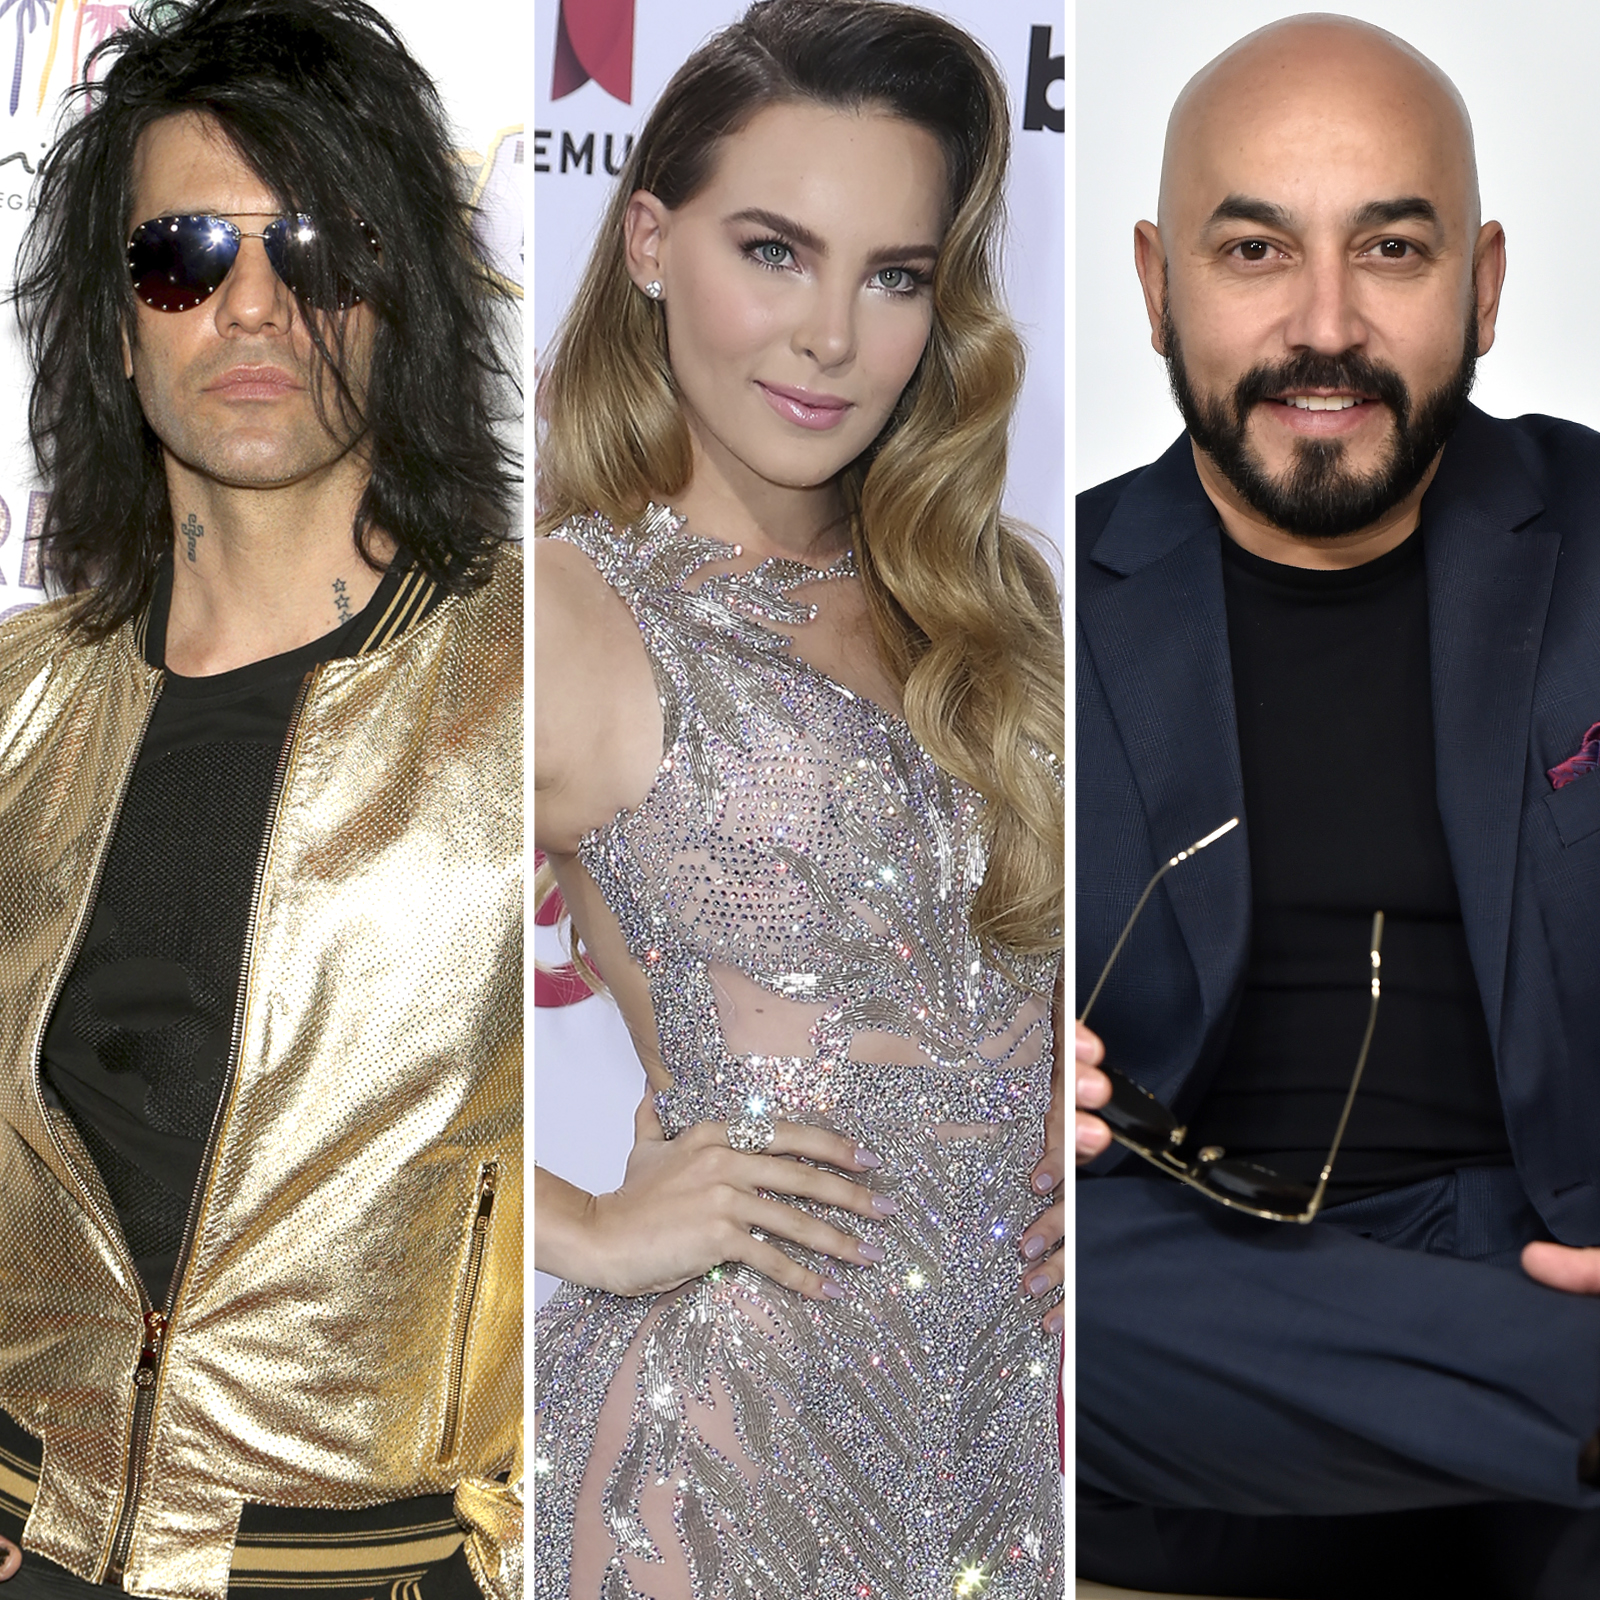 Criss Angel, Belinda y Lupillo Rivera